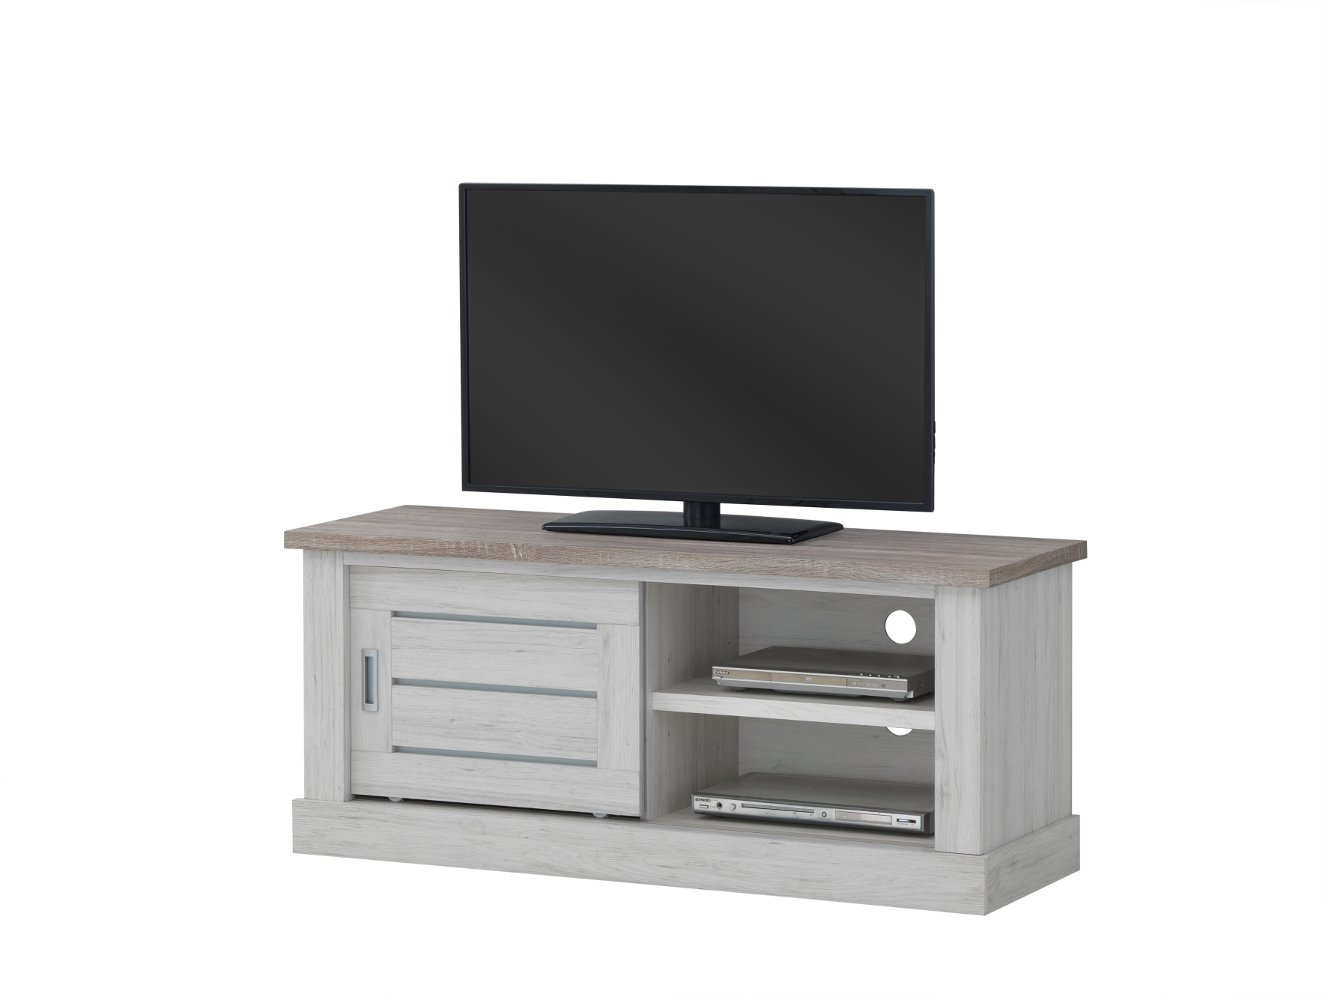 Tv Contemporain 132 Cm Comtesse # Meuble Tv Angle Contemporain